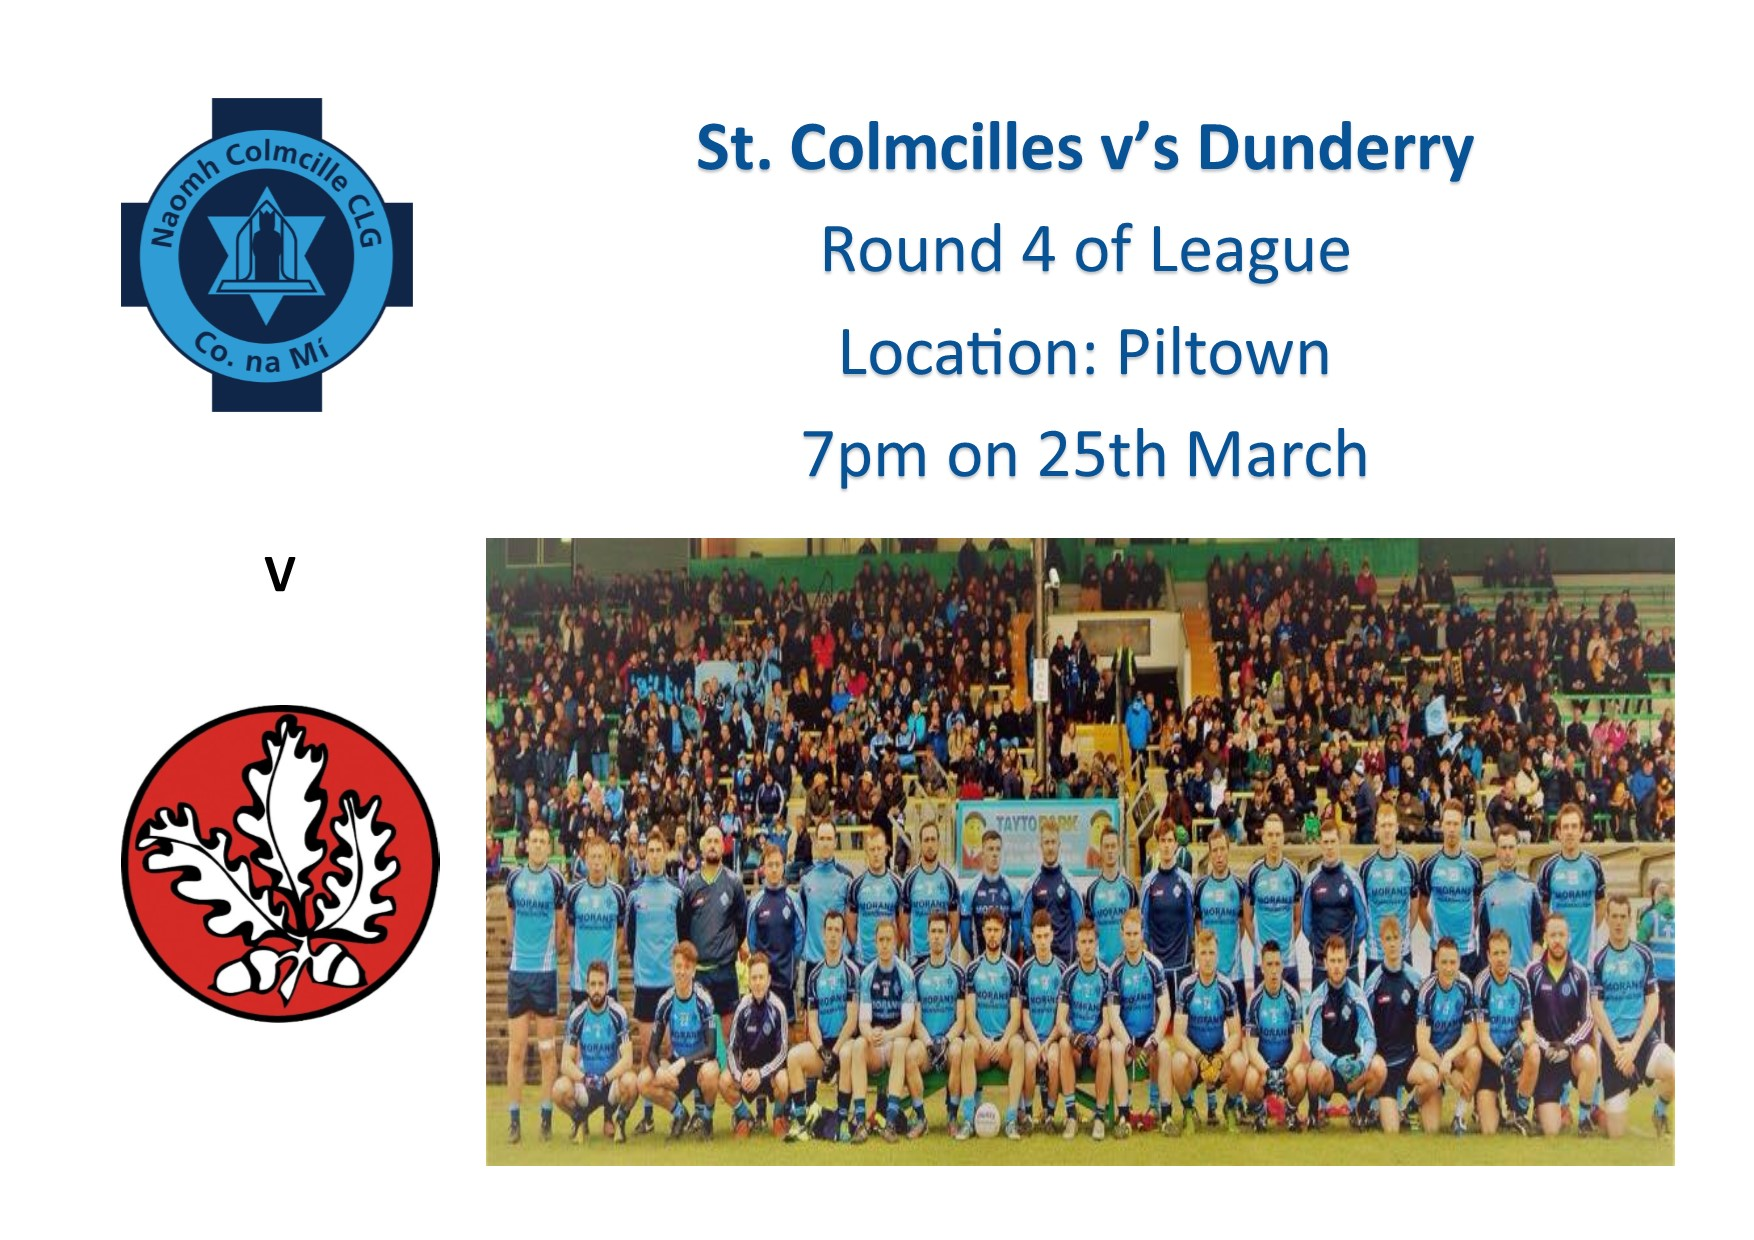 St. Colmcilles Seniors v's Dunderry League Round 4